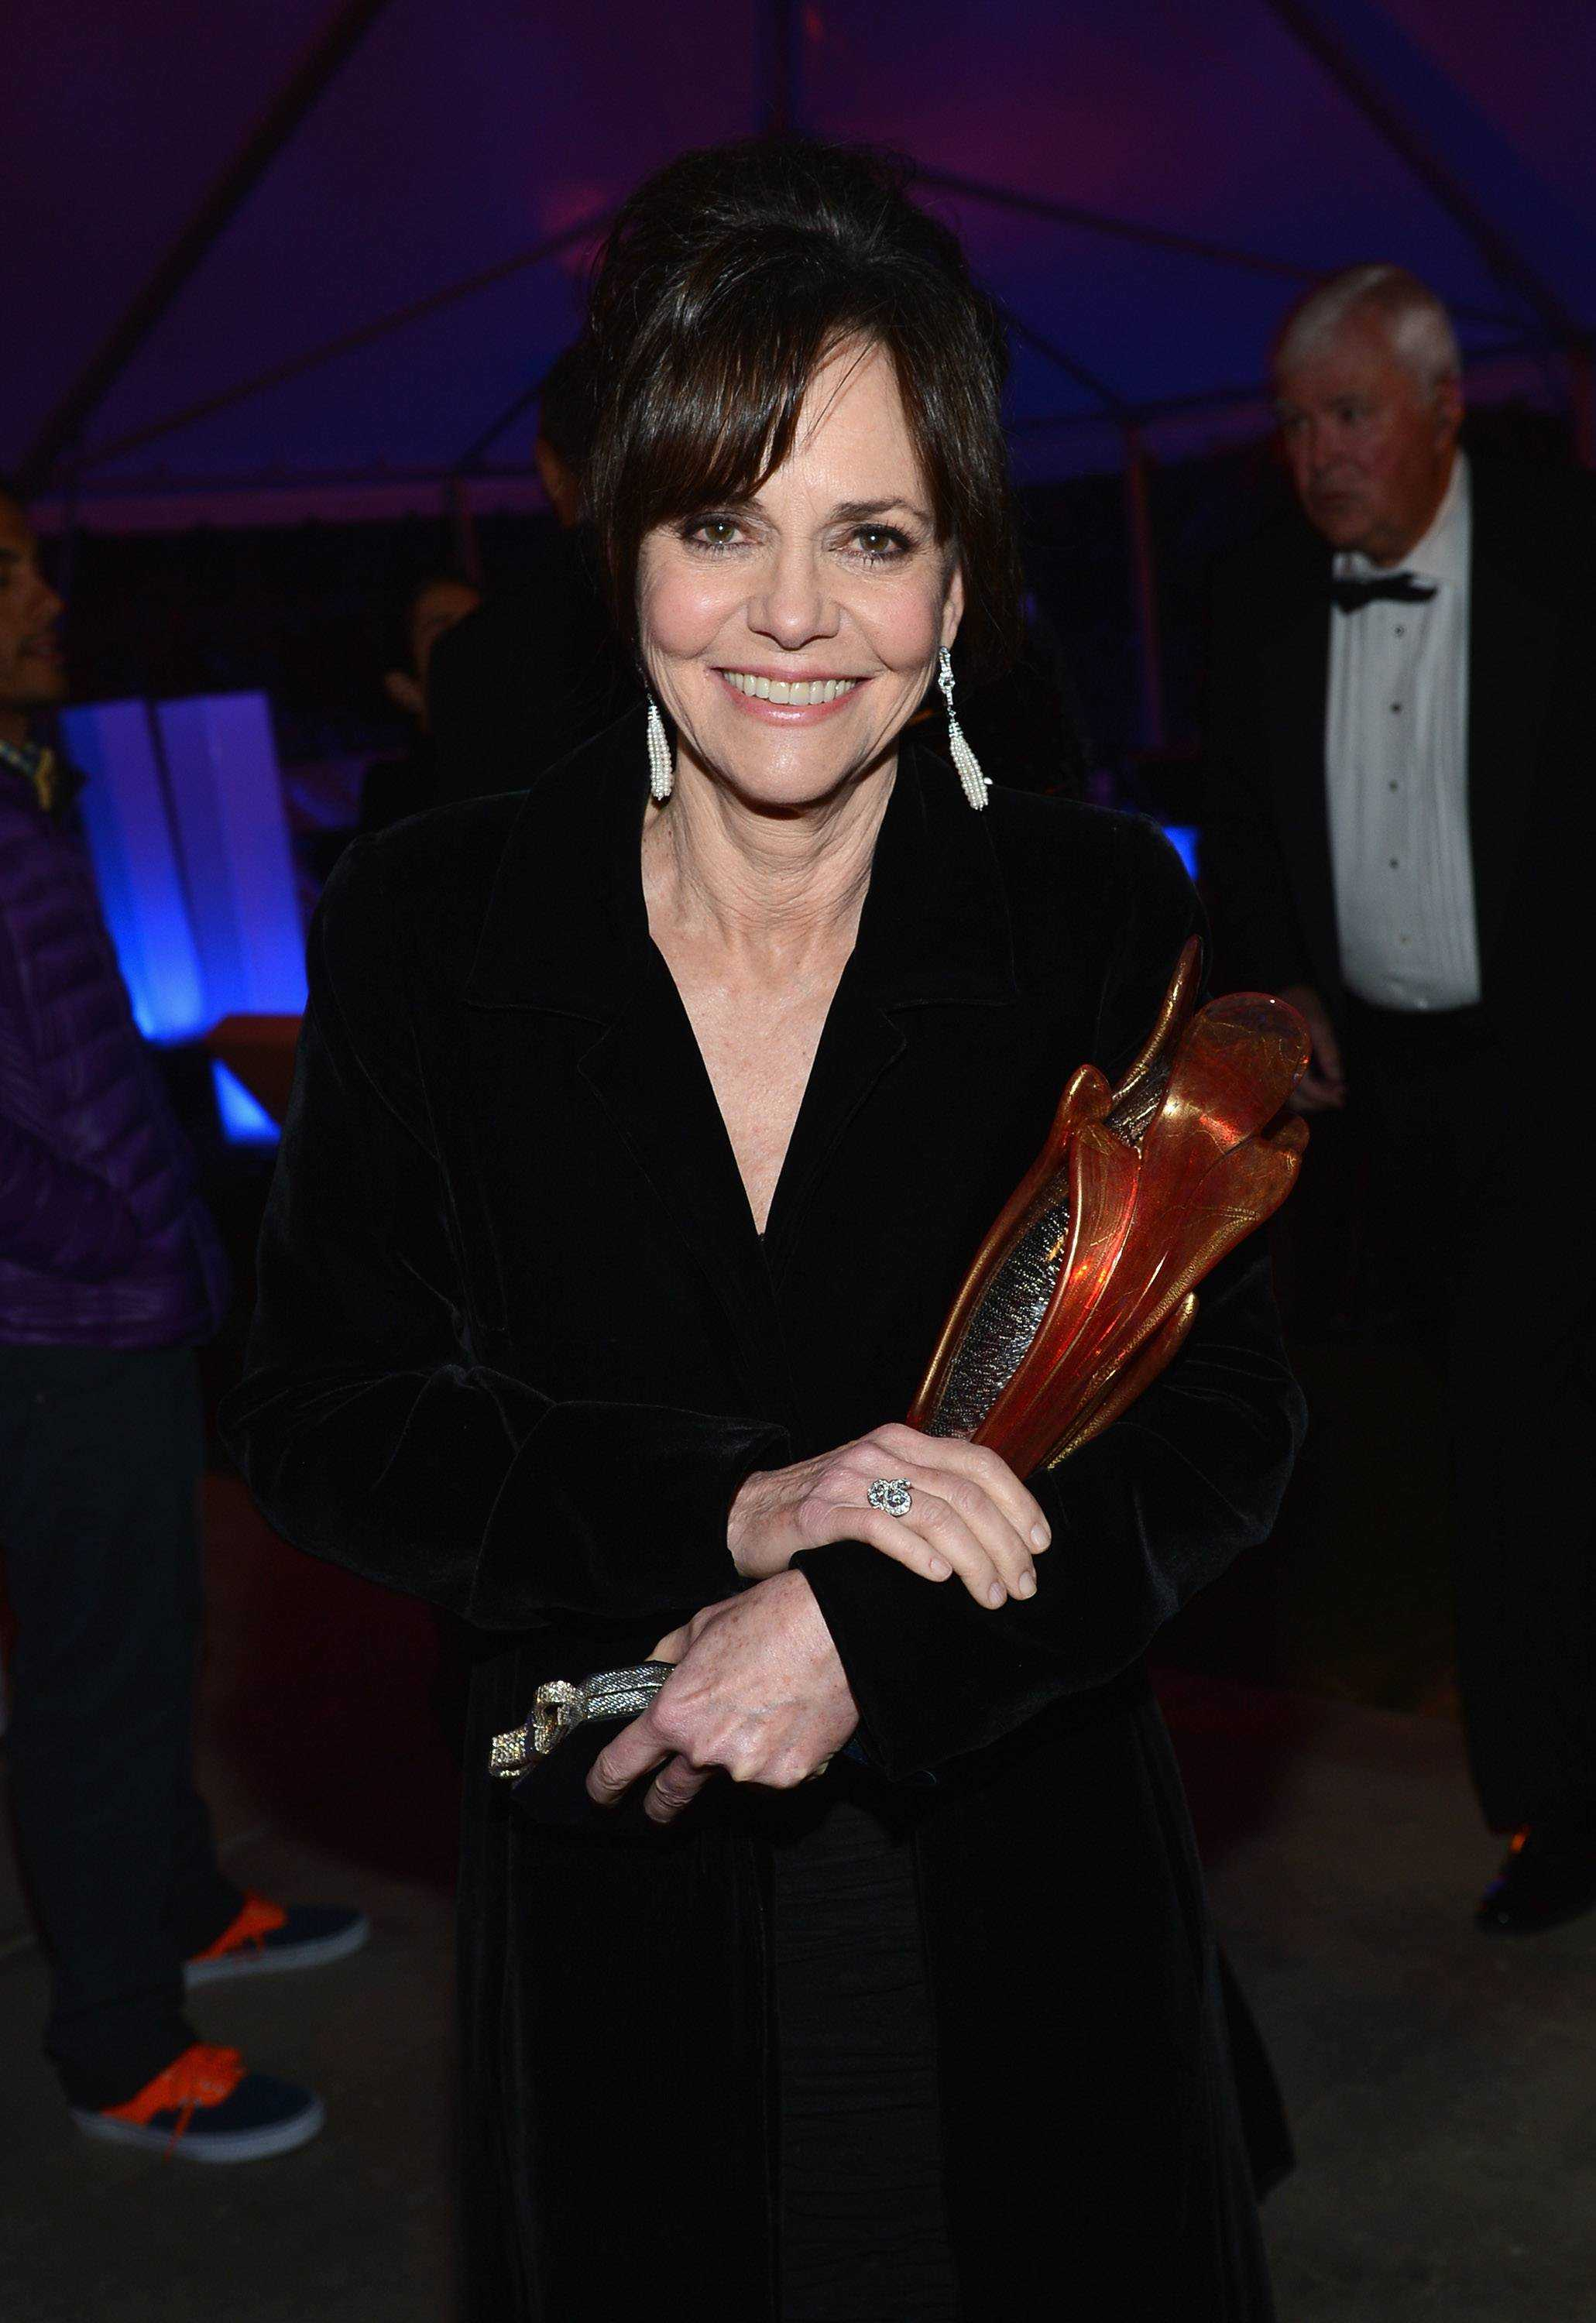 24th Annual Palm Springs International Film Festival Awards Gala - After Party At Parker Palm Springs